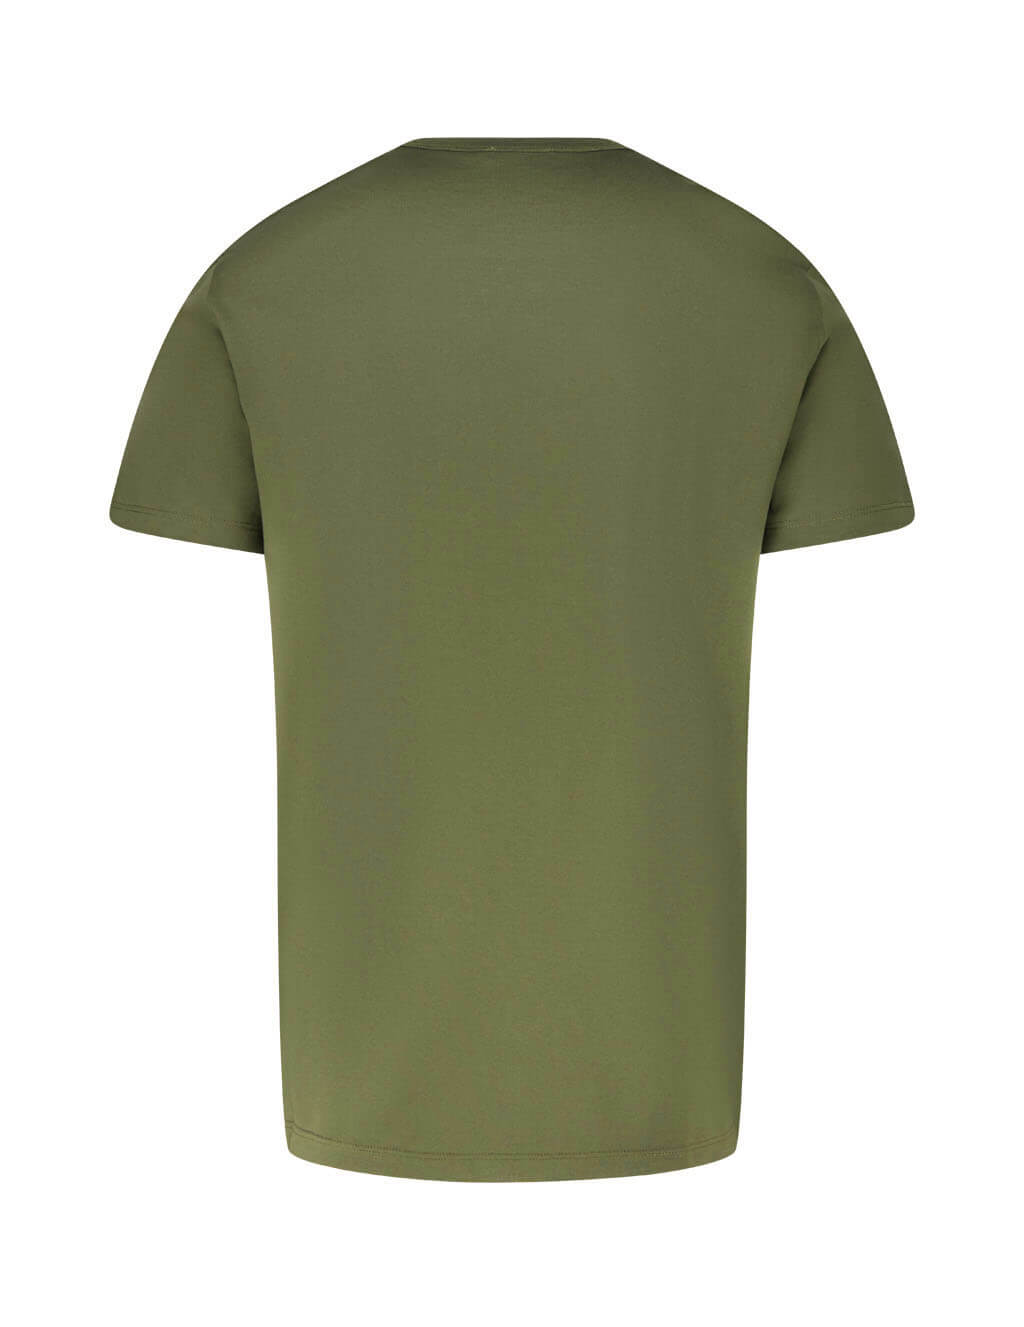 Moncler Men's Giulio Fashion Green Double Patch T-Shirt 0918C781008390Y880